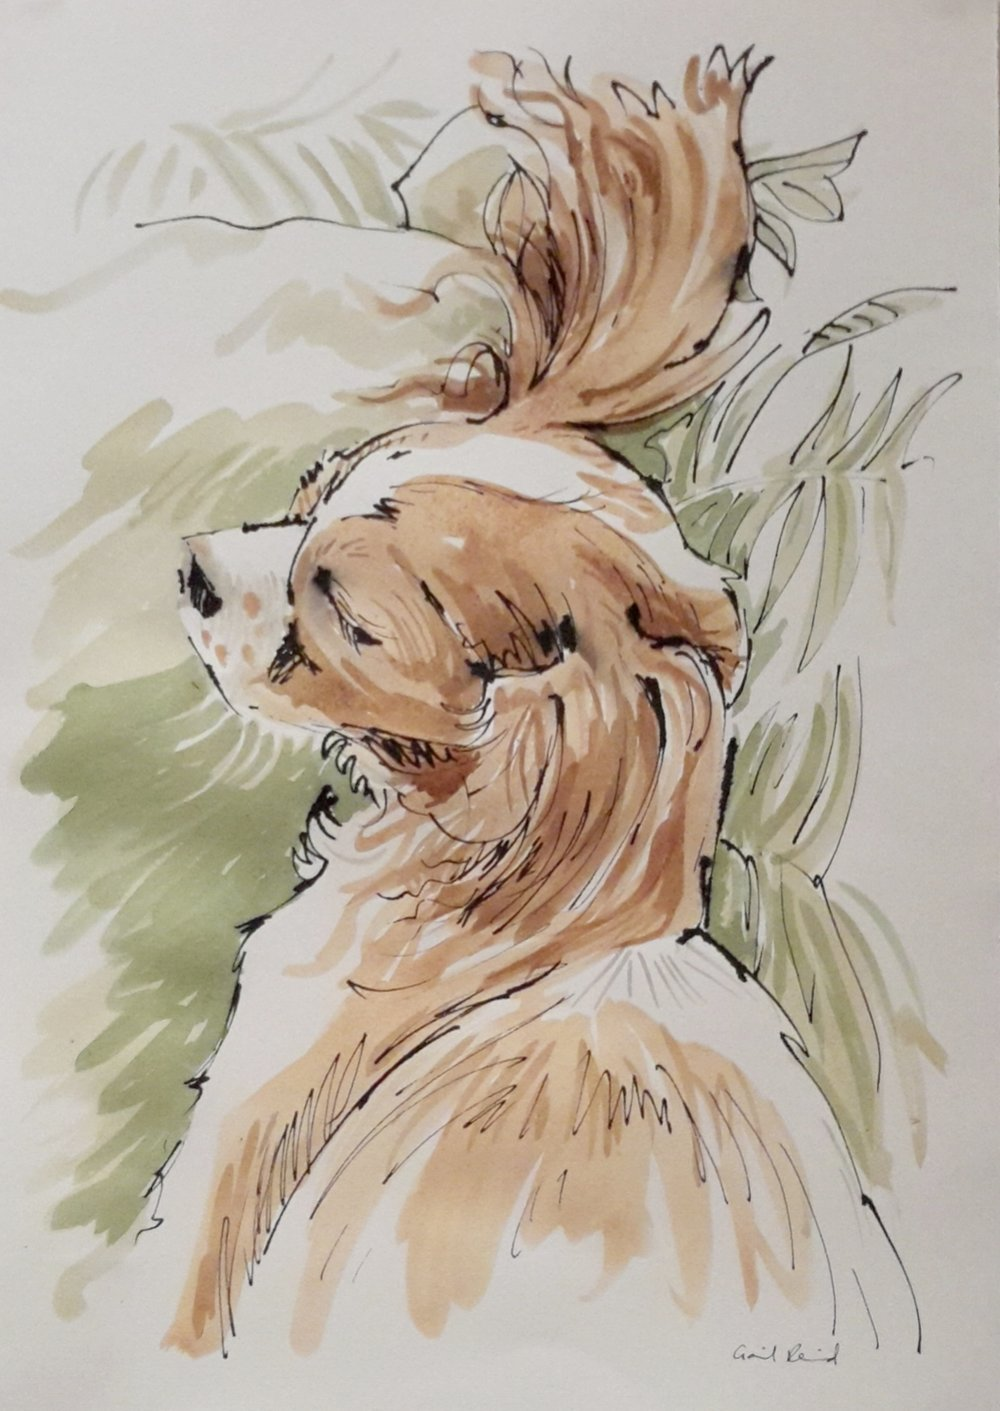 Pen and ink and watercolour wash